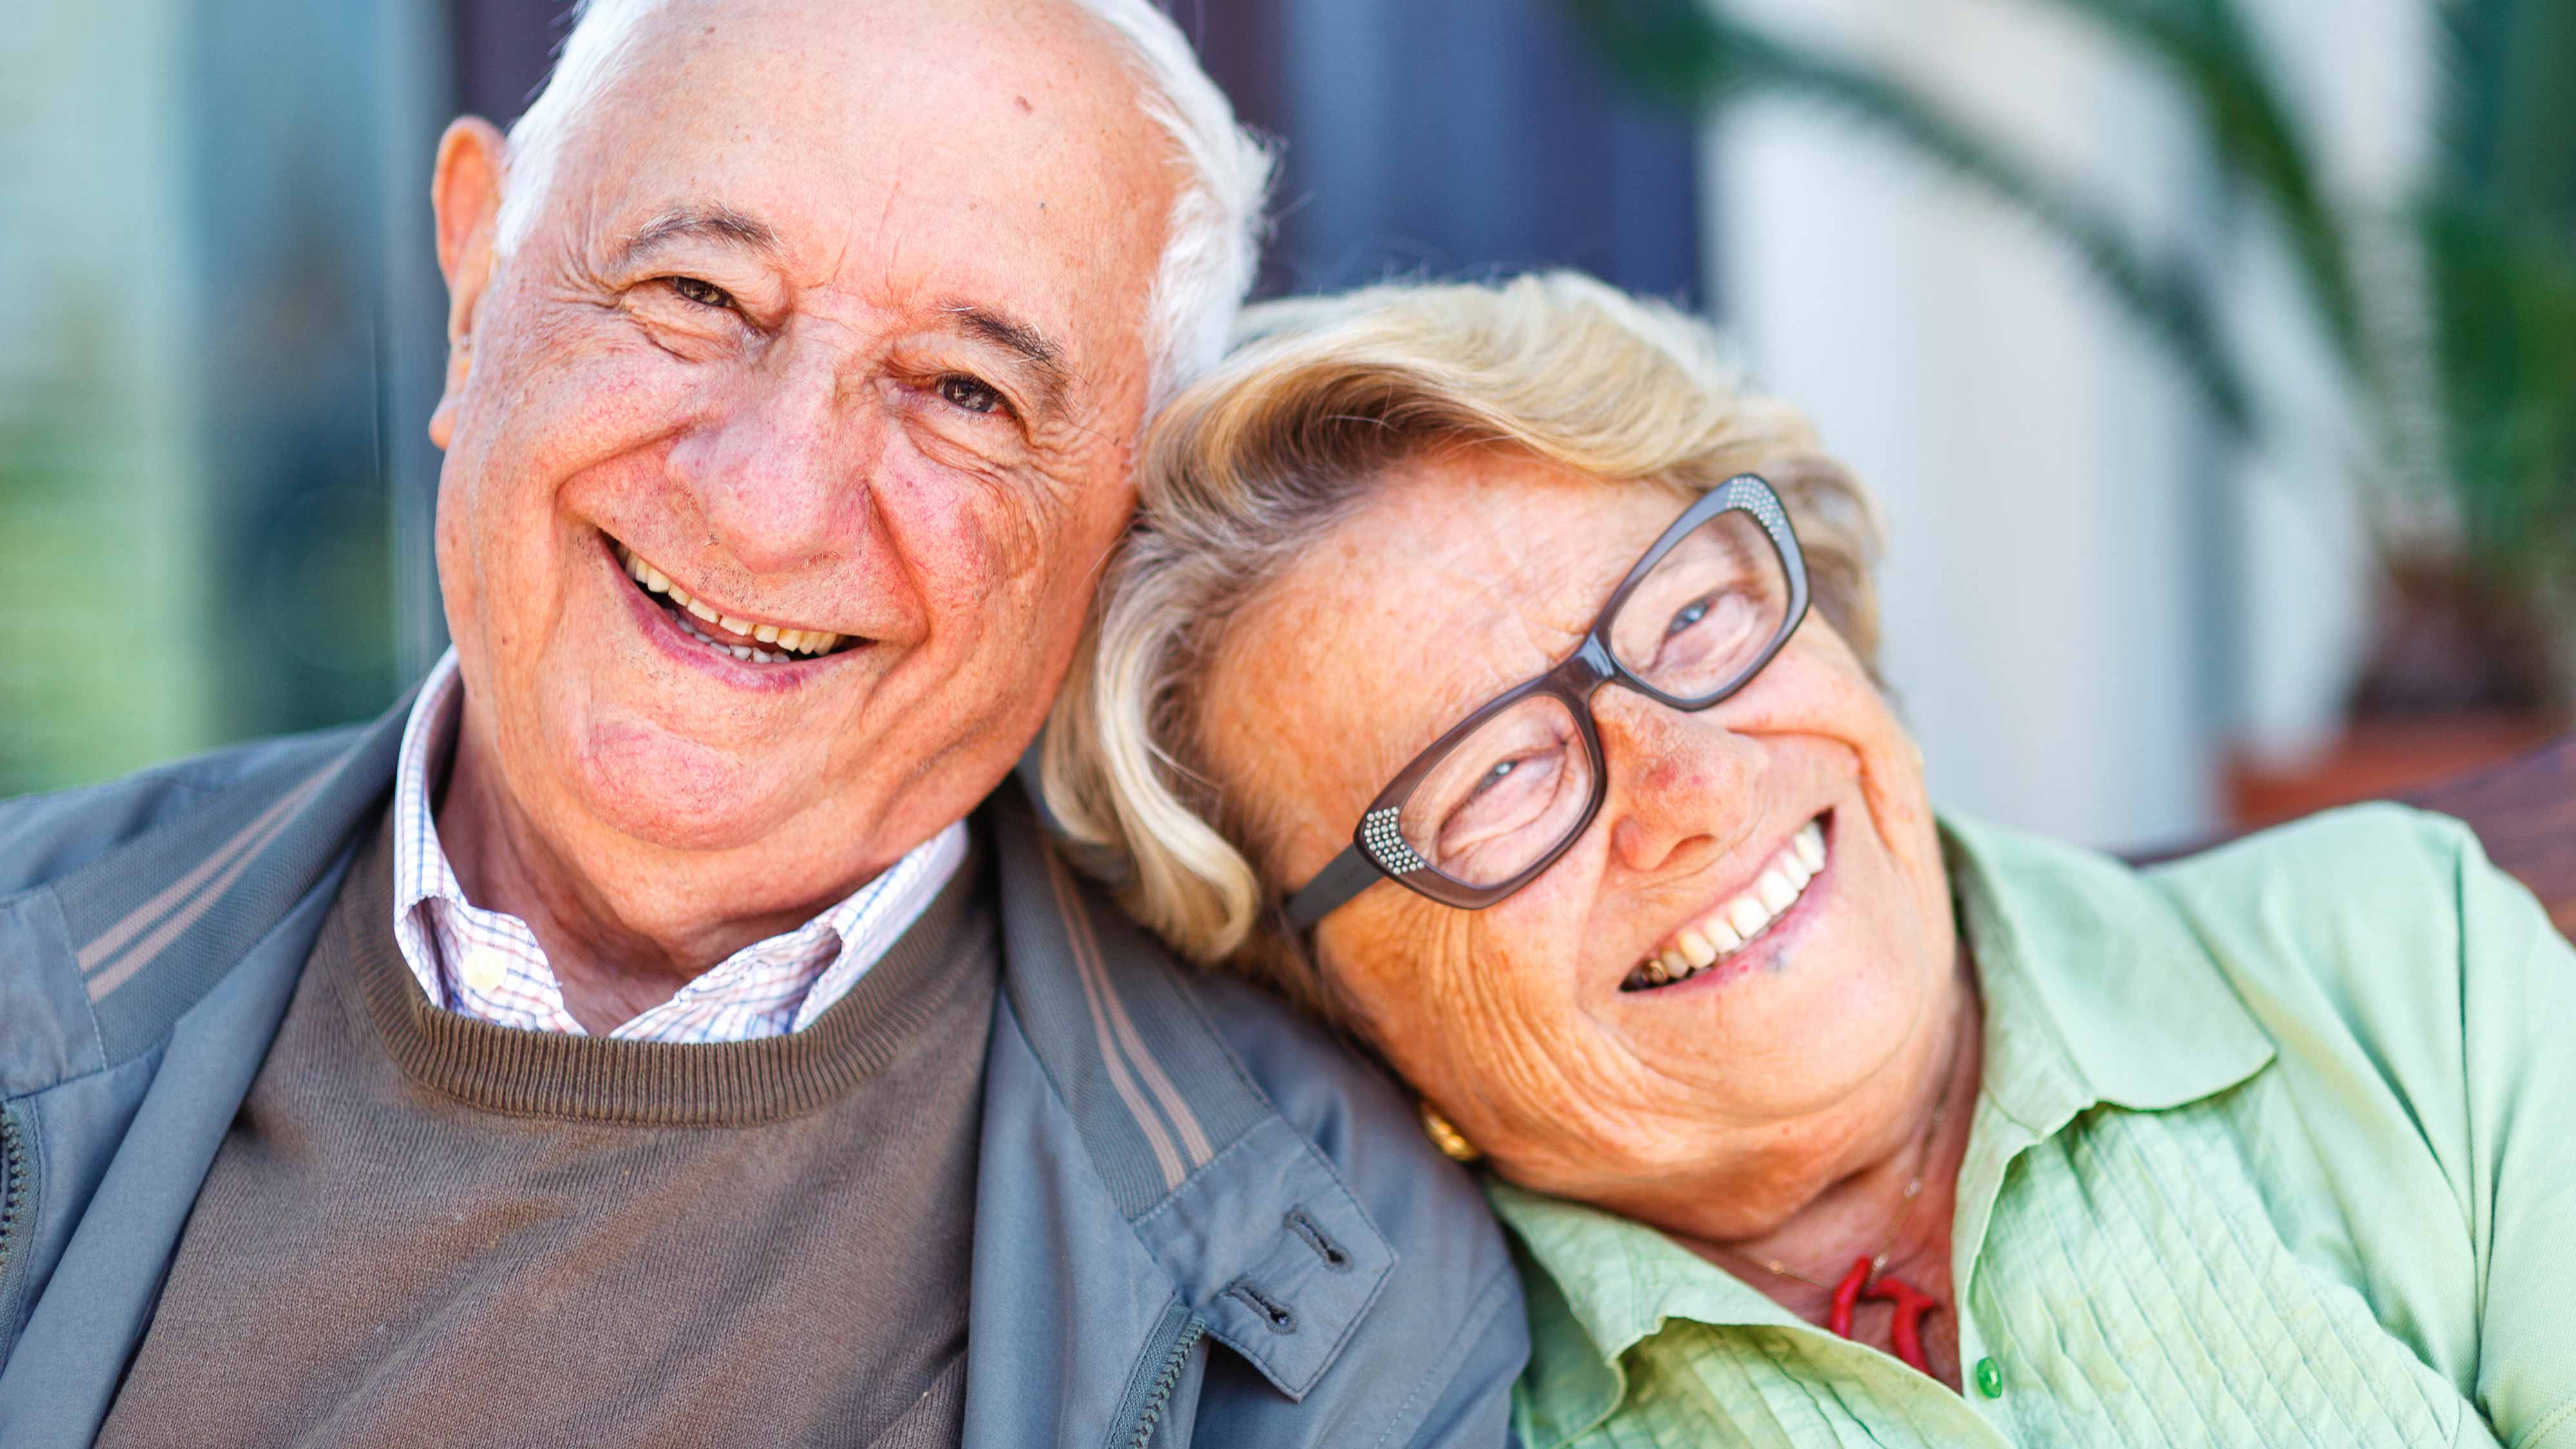 Most Reliable Seniors Online Dating Site No Payments